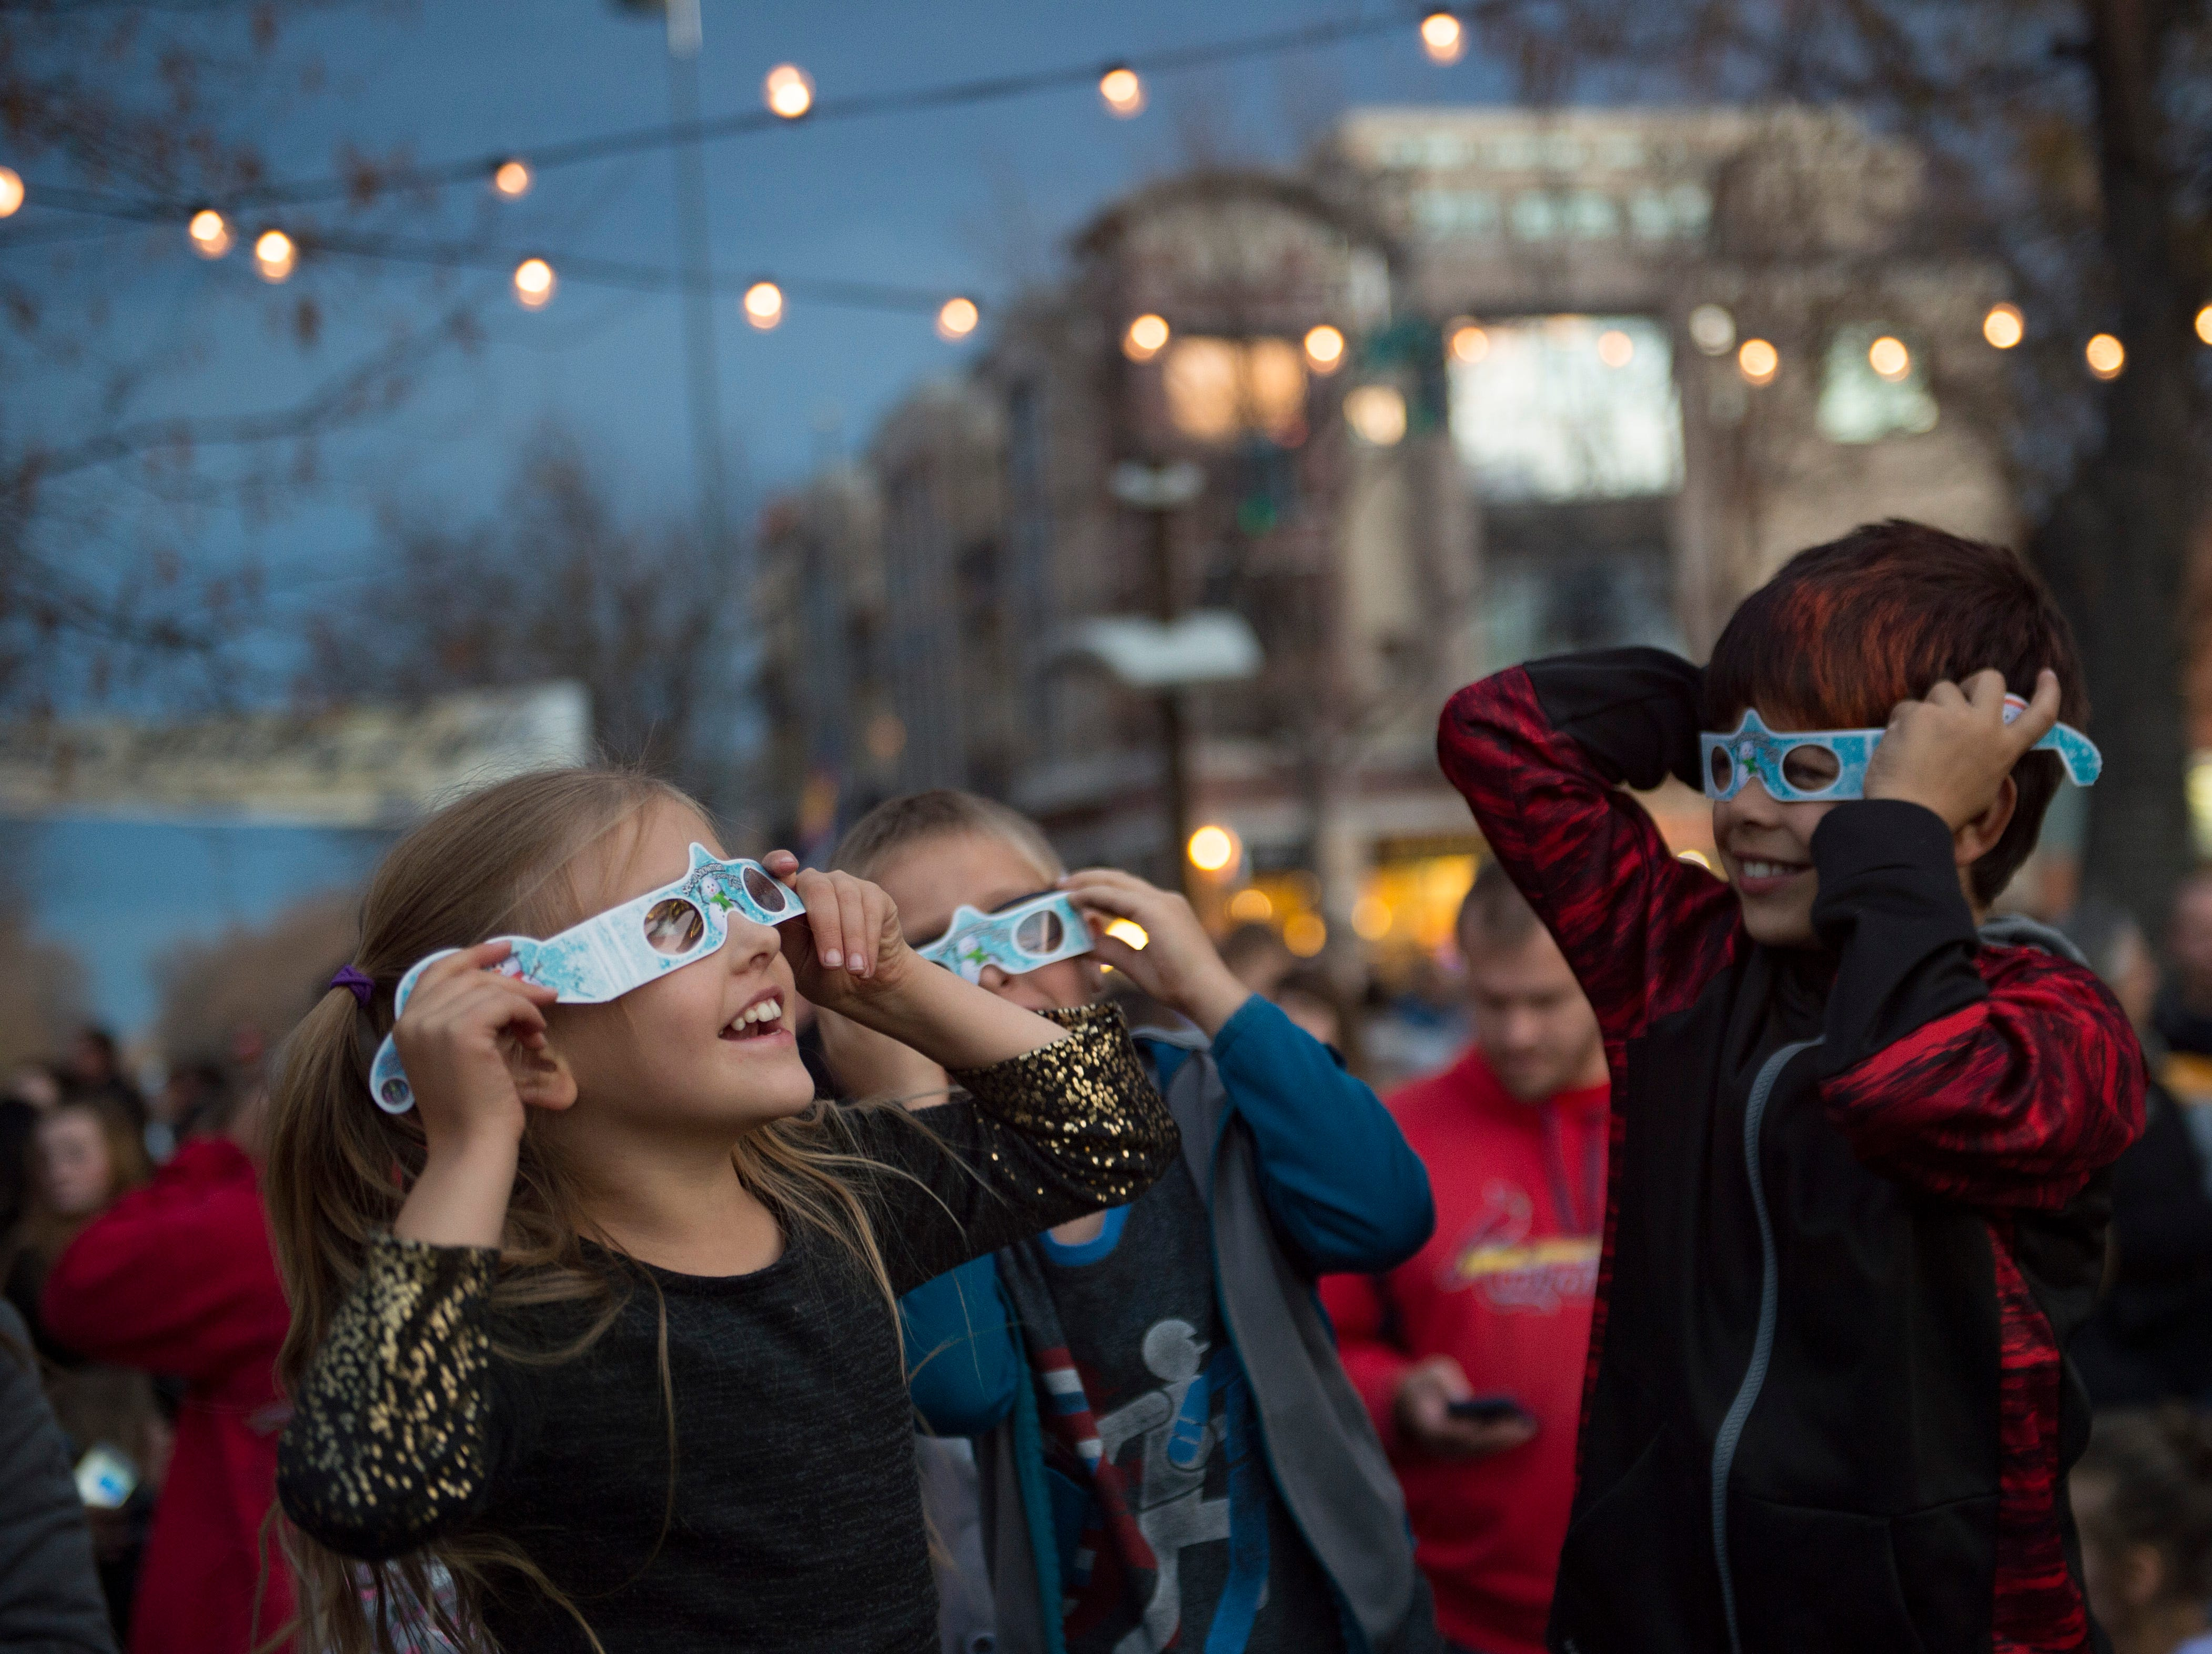 Kids try on their 3D glasses in Oak Street Plaza before the holiday lights are turned on in Old Town on Friday, November 2, 2018. The lights will illuminate Old Town until Feb. 14.